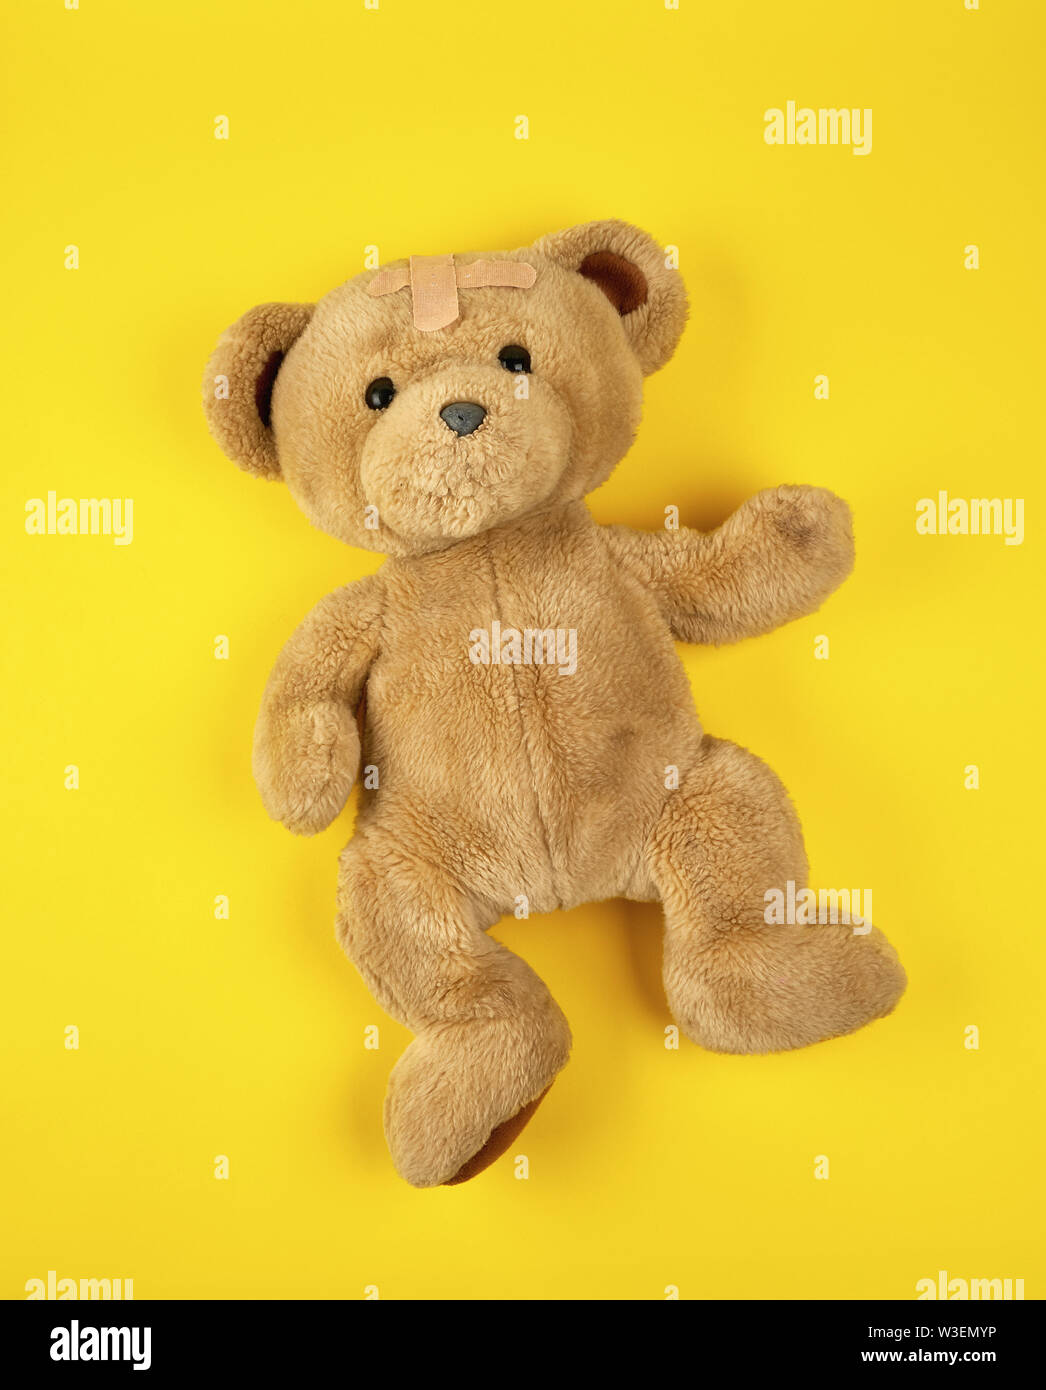 brown teddy bear on a yellow background, top view - Stock Image